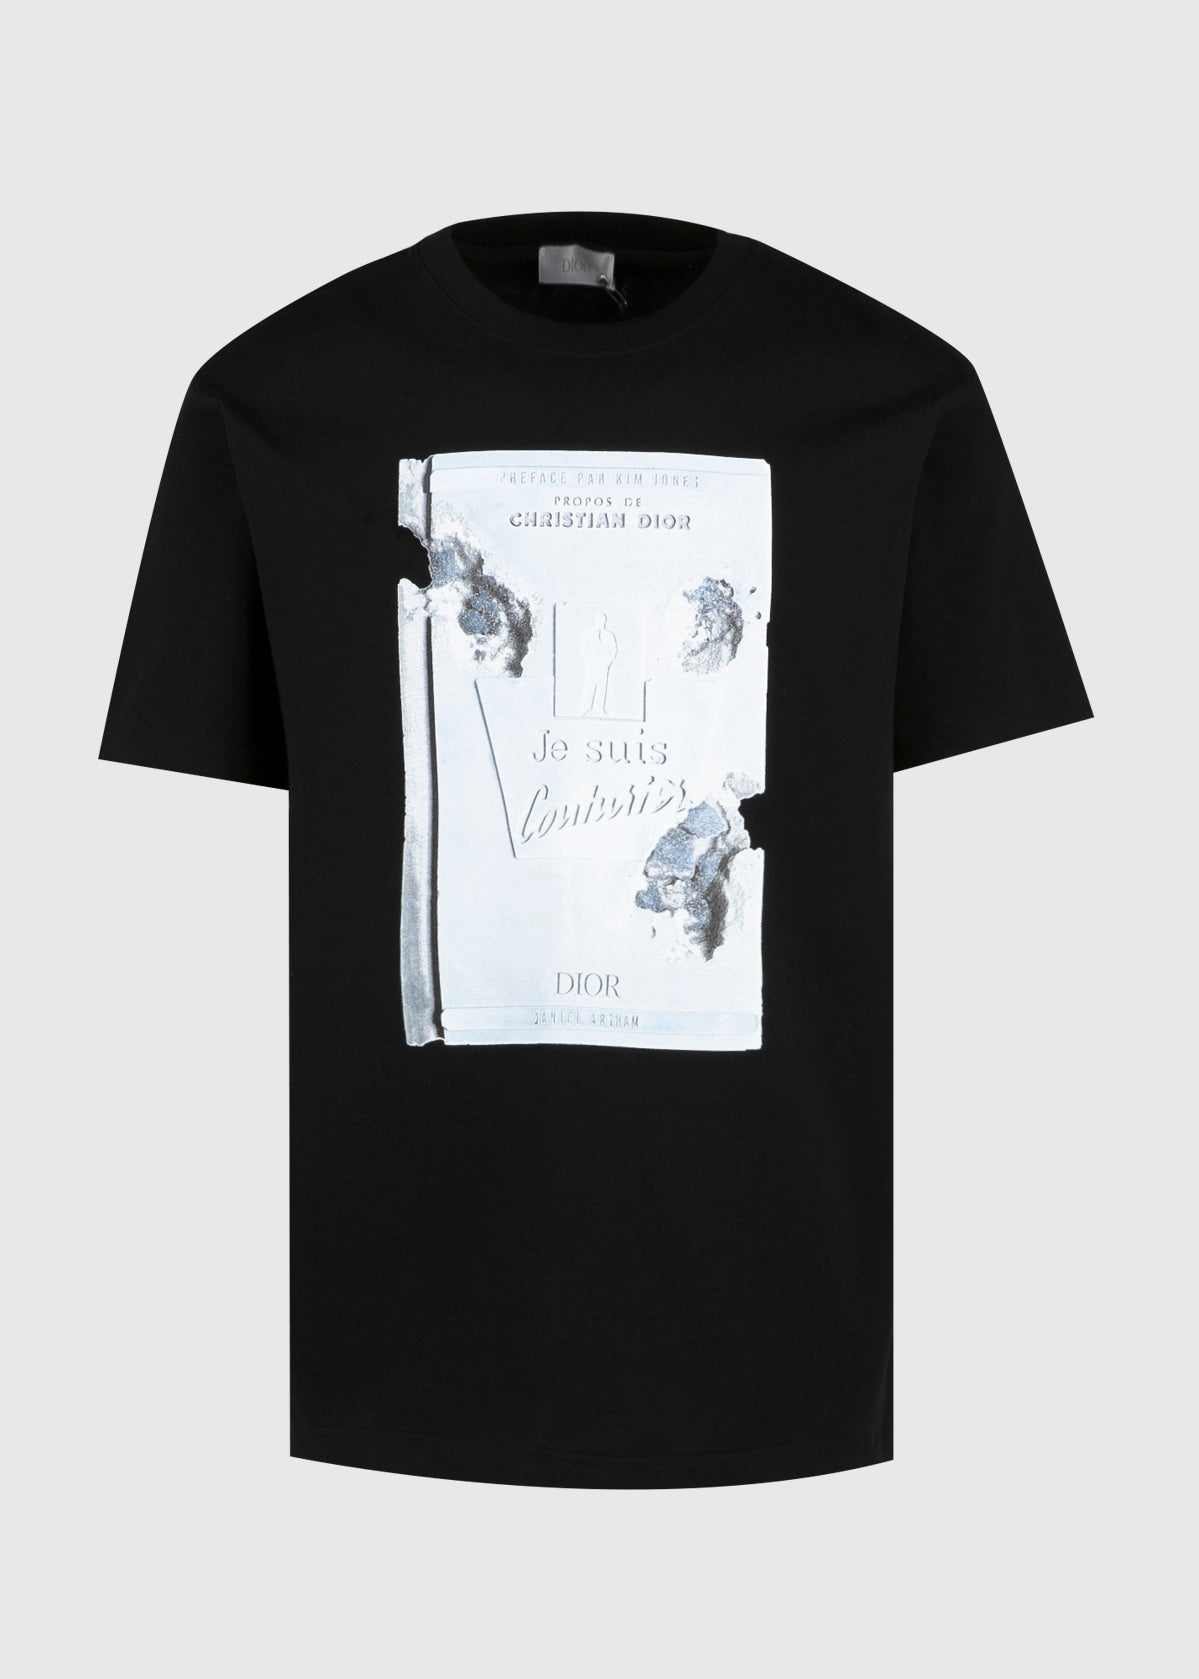 DIOR: 3D PRINT 'JE SUIS COUTURIER' BOOK SS TEE [BLACK]